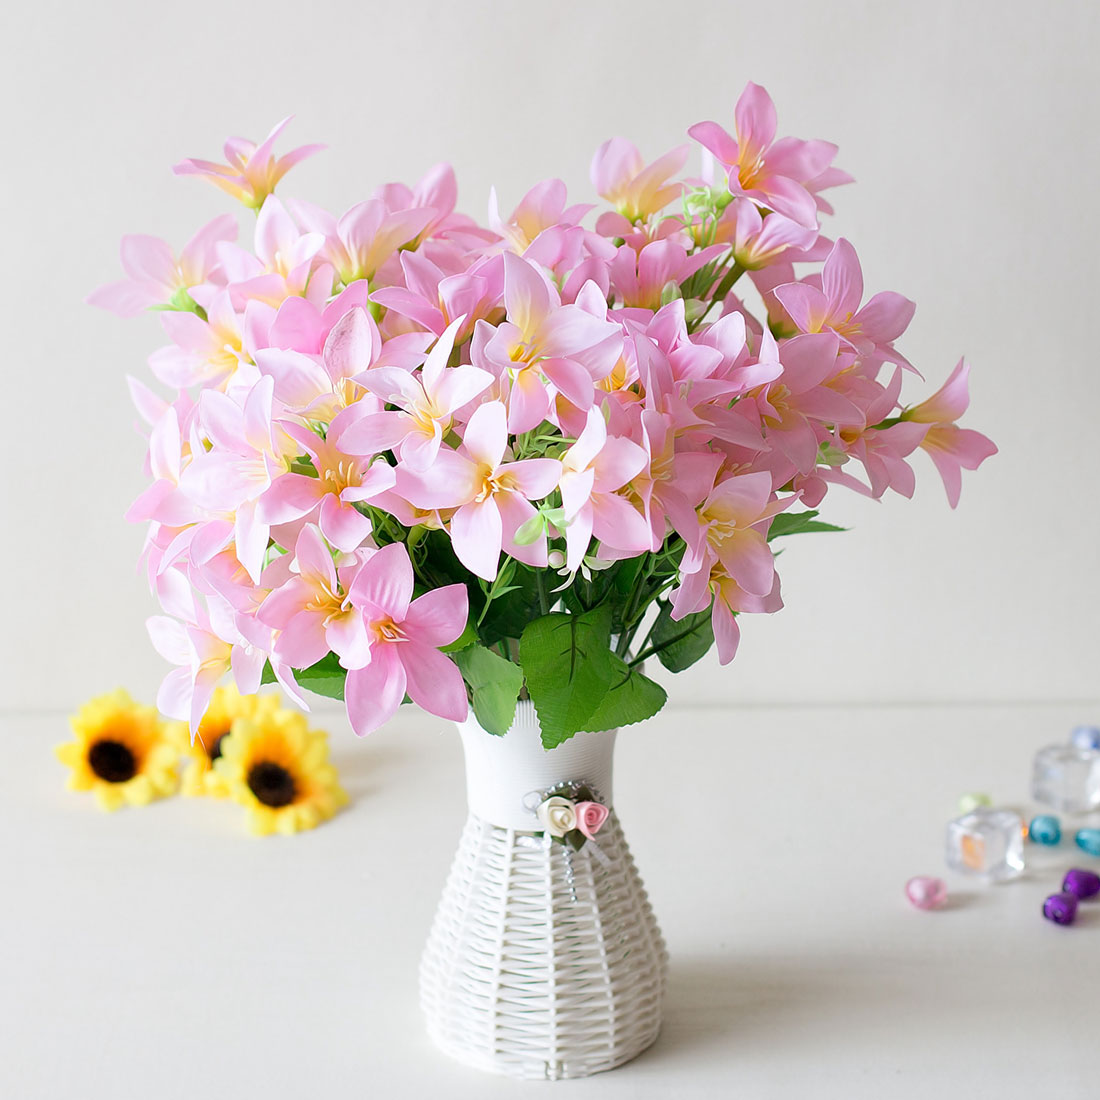 Home Decoration Accessories Real Touch Artificial Flowers Wedding Decorative Flowers Calla Lily Silk Fake Flowers